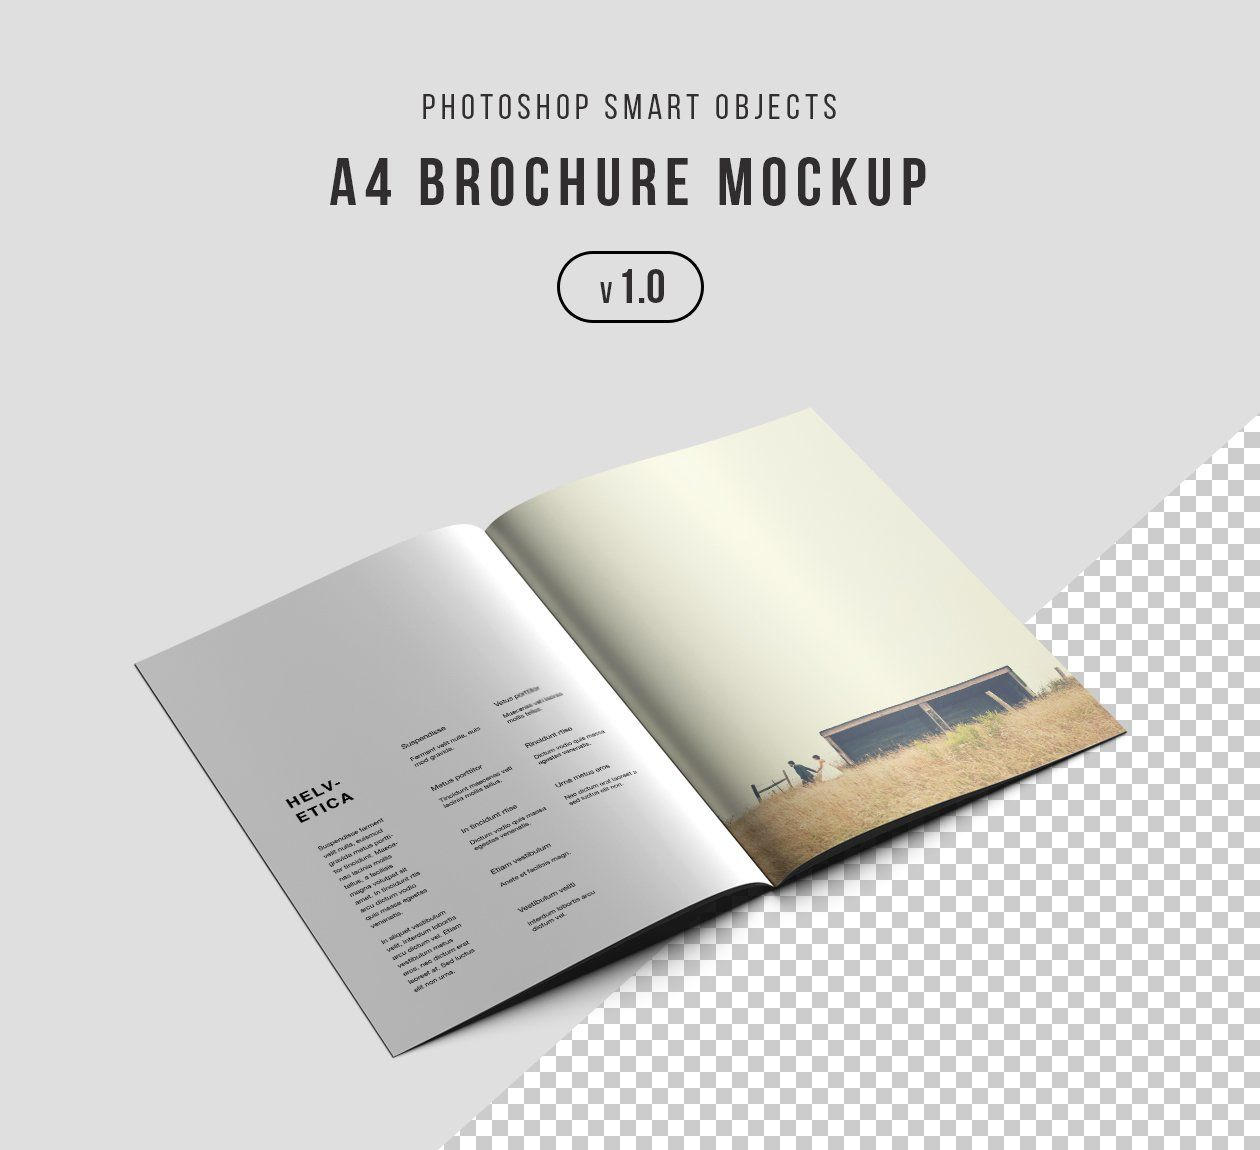 Free A4 Brochure Mockup Psd Graphic Pear Free Photoshop Mockup Psd A4 Brochure Folletos Y Free